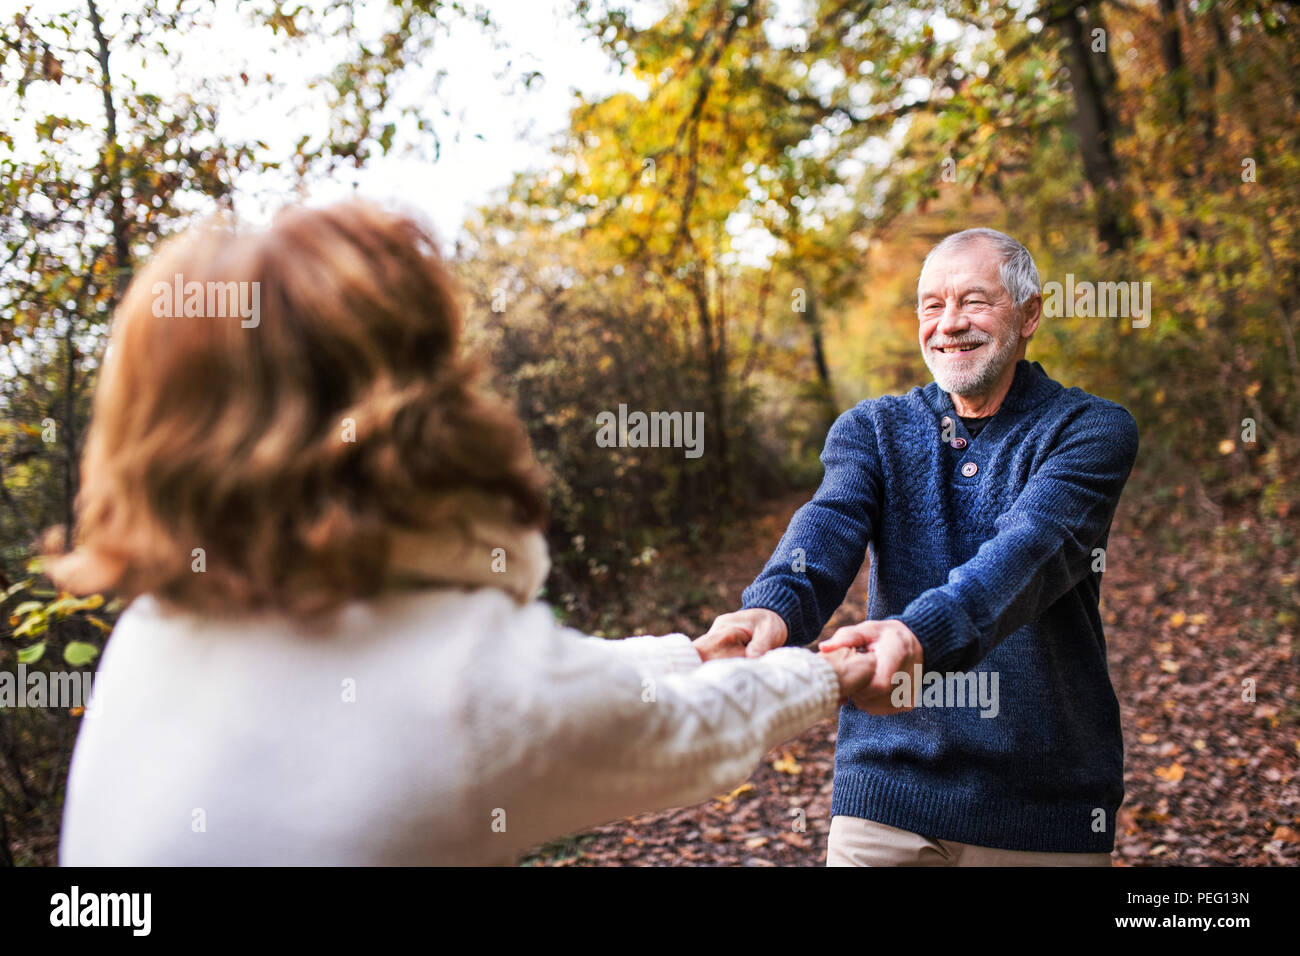 Senior couple in an autumn nature, holding hands and spinning. - Stock Image